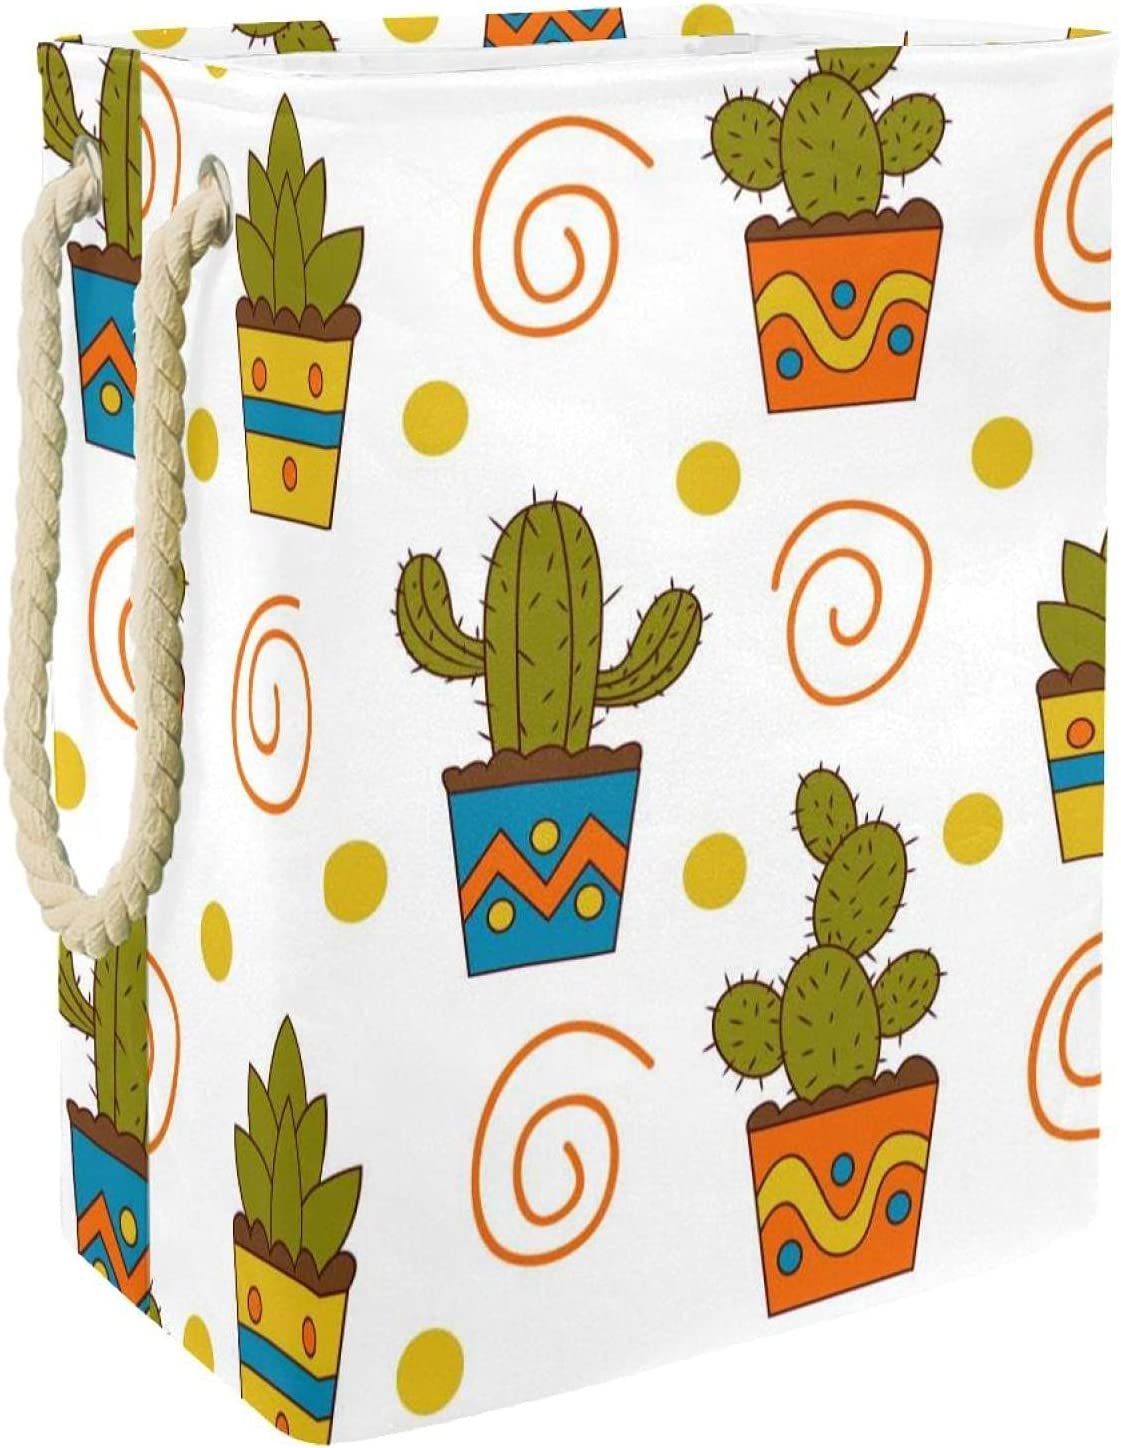 MAPOLO Laundry Popular shop is the lowest price challenge Hamper Cactus Simple Arlington Mall Foldable Linen Laund Pattern